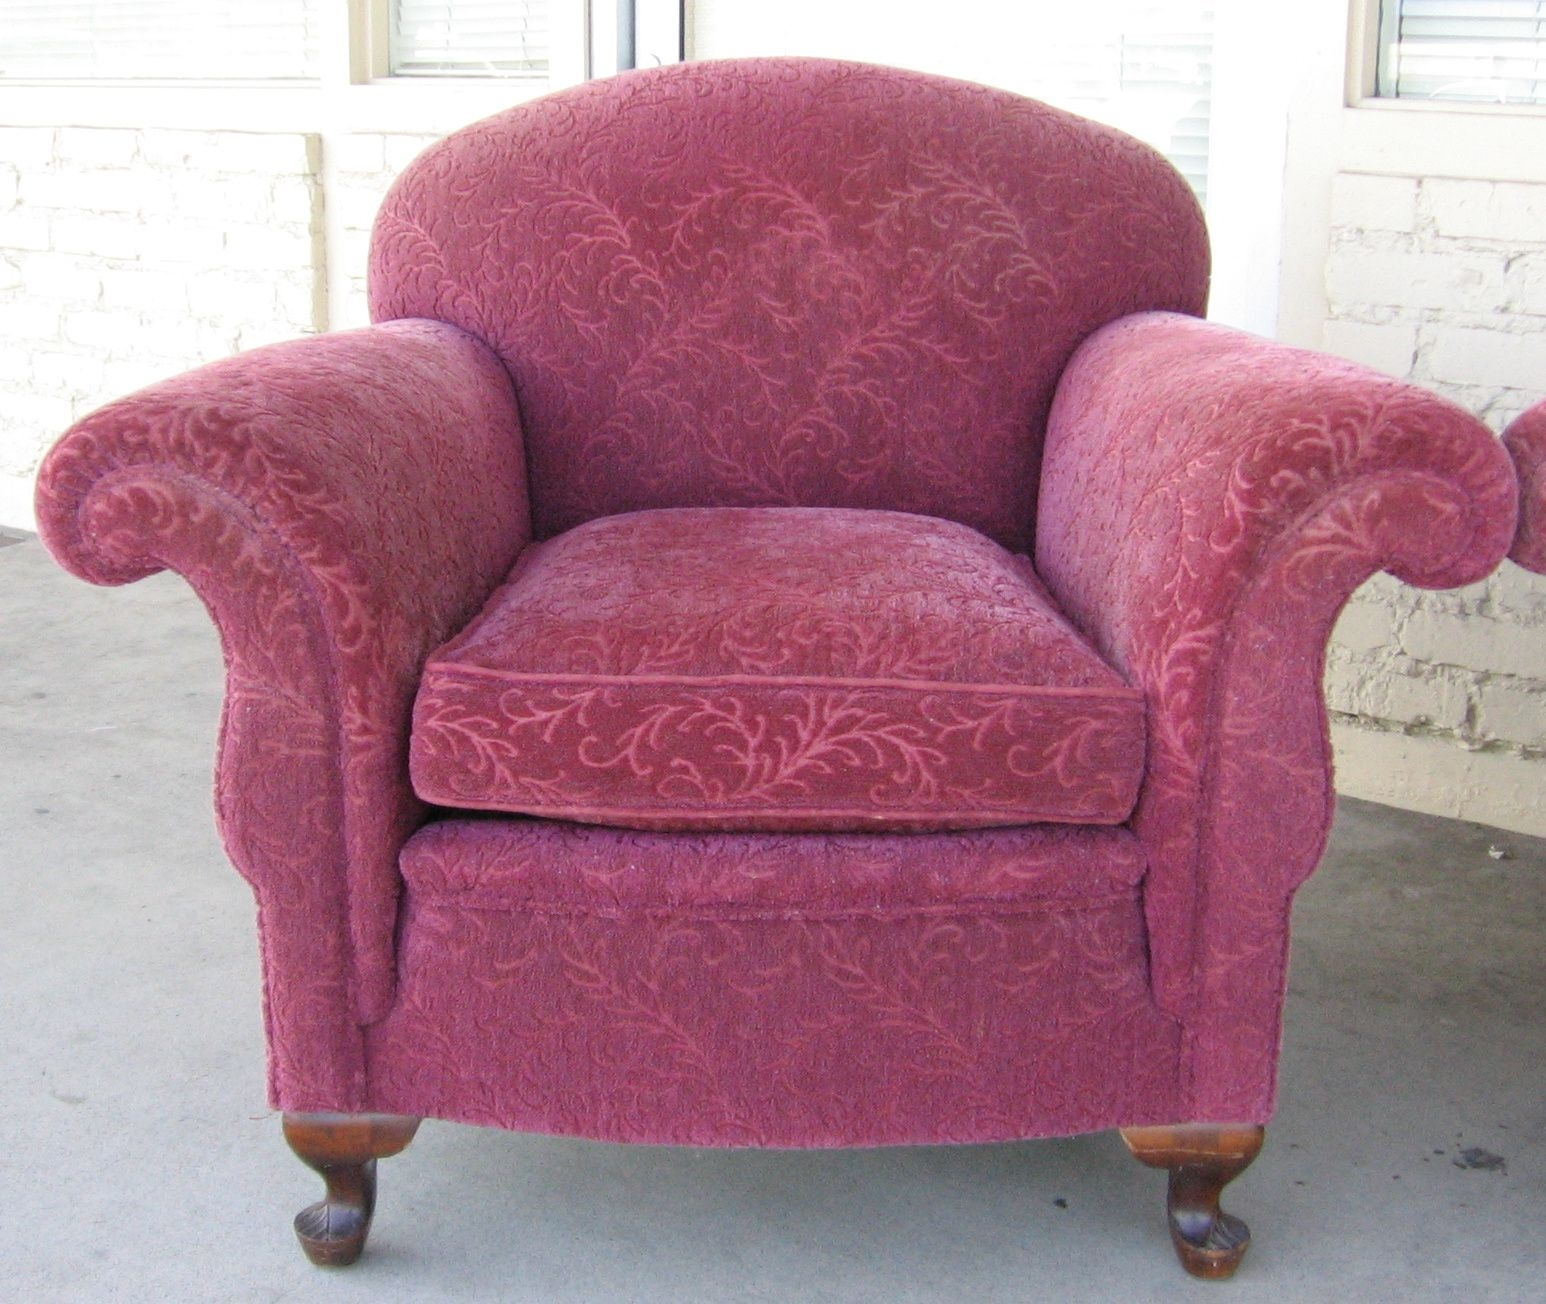 1930s Upholstered Furniture Images Google Search 1930s With 1930s Sofas (Image 6 of 15)